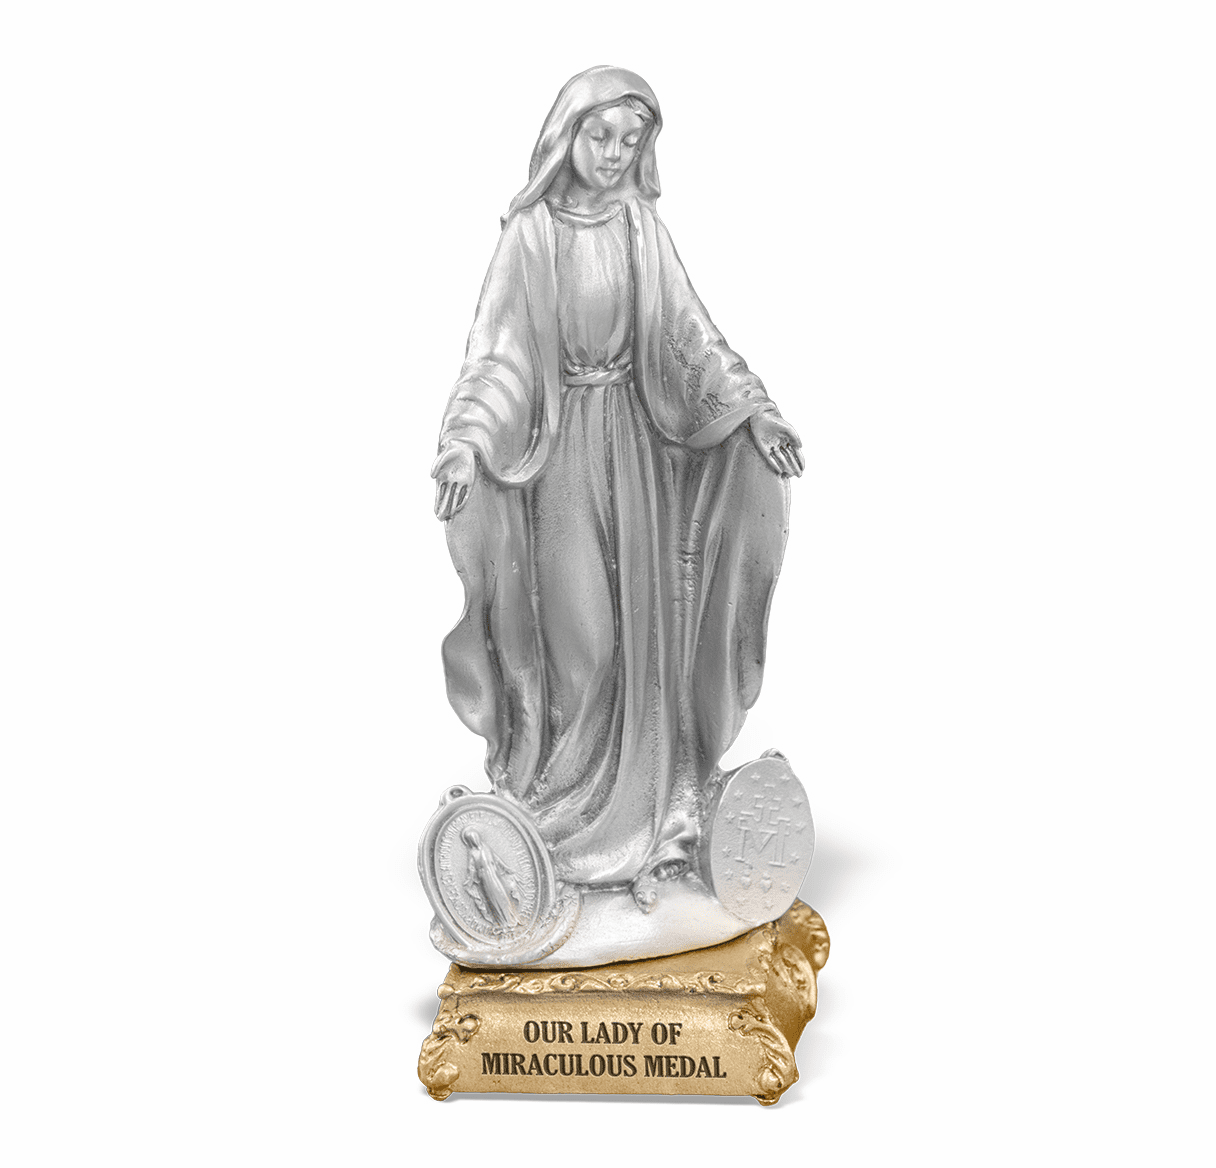 Our Lady of Miraculous Medal Pewter Statue on Gold Tone Base by Hirten